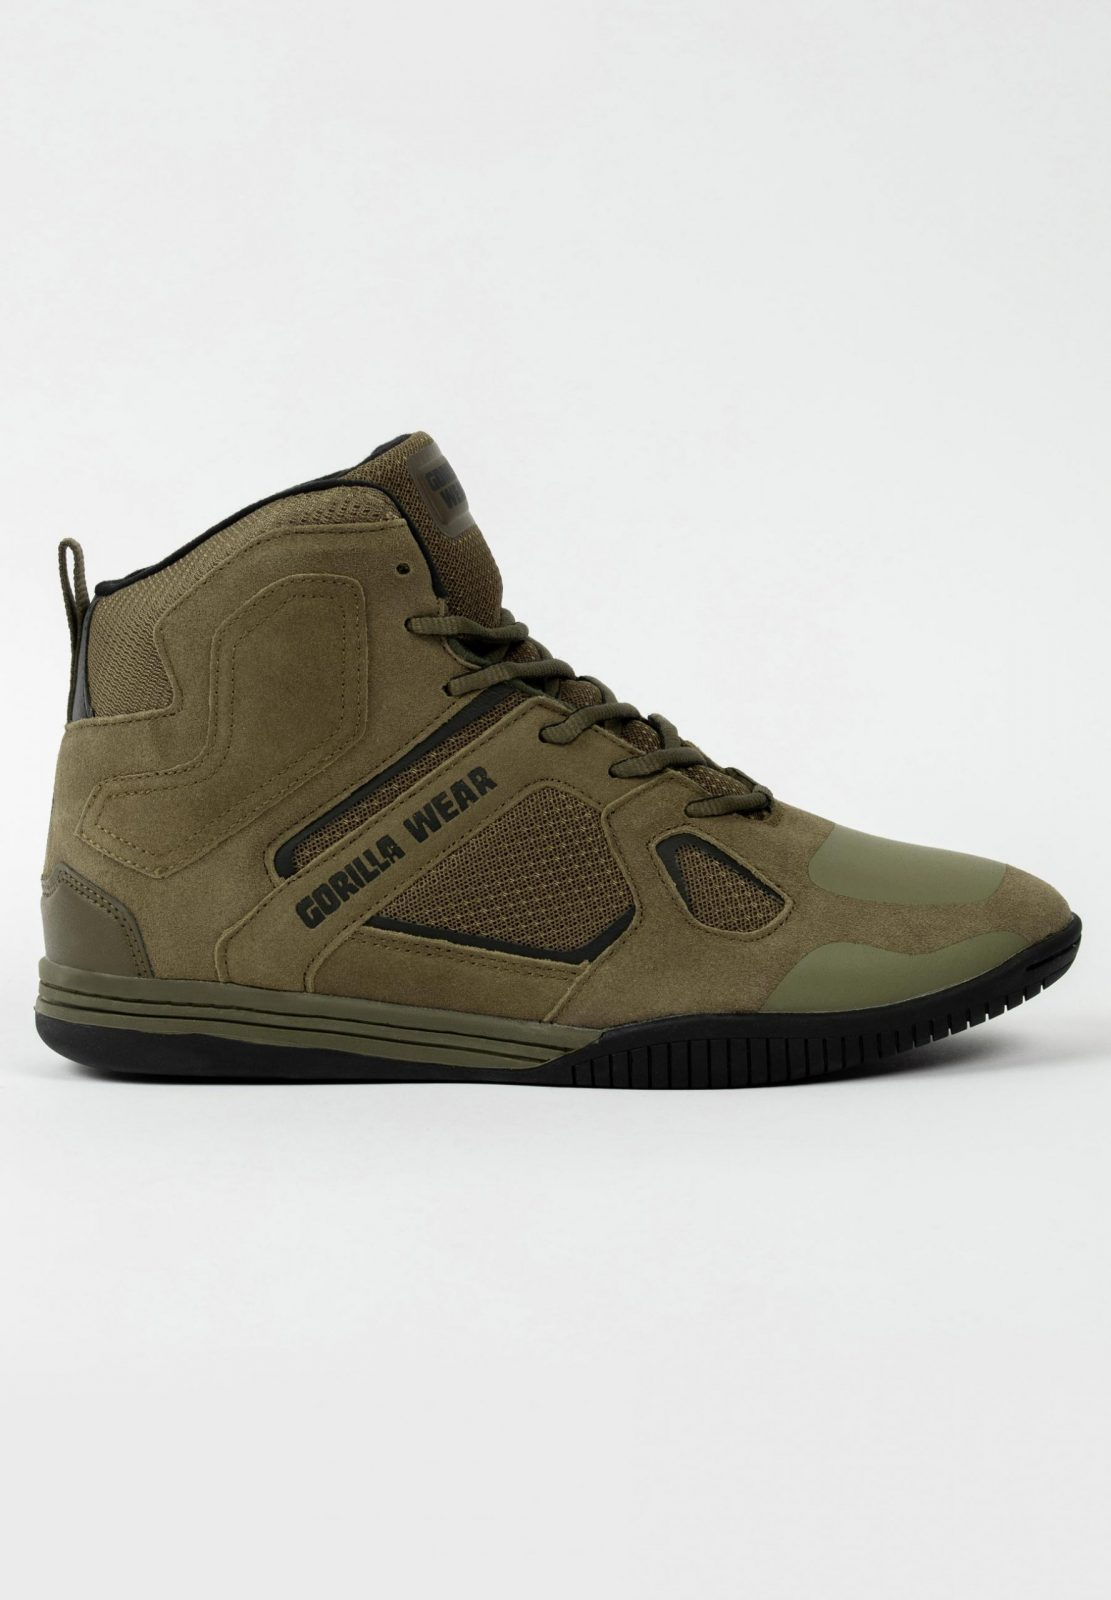 90009409-troy-high-tops-army-green-01